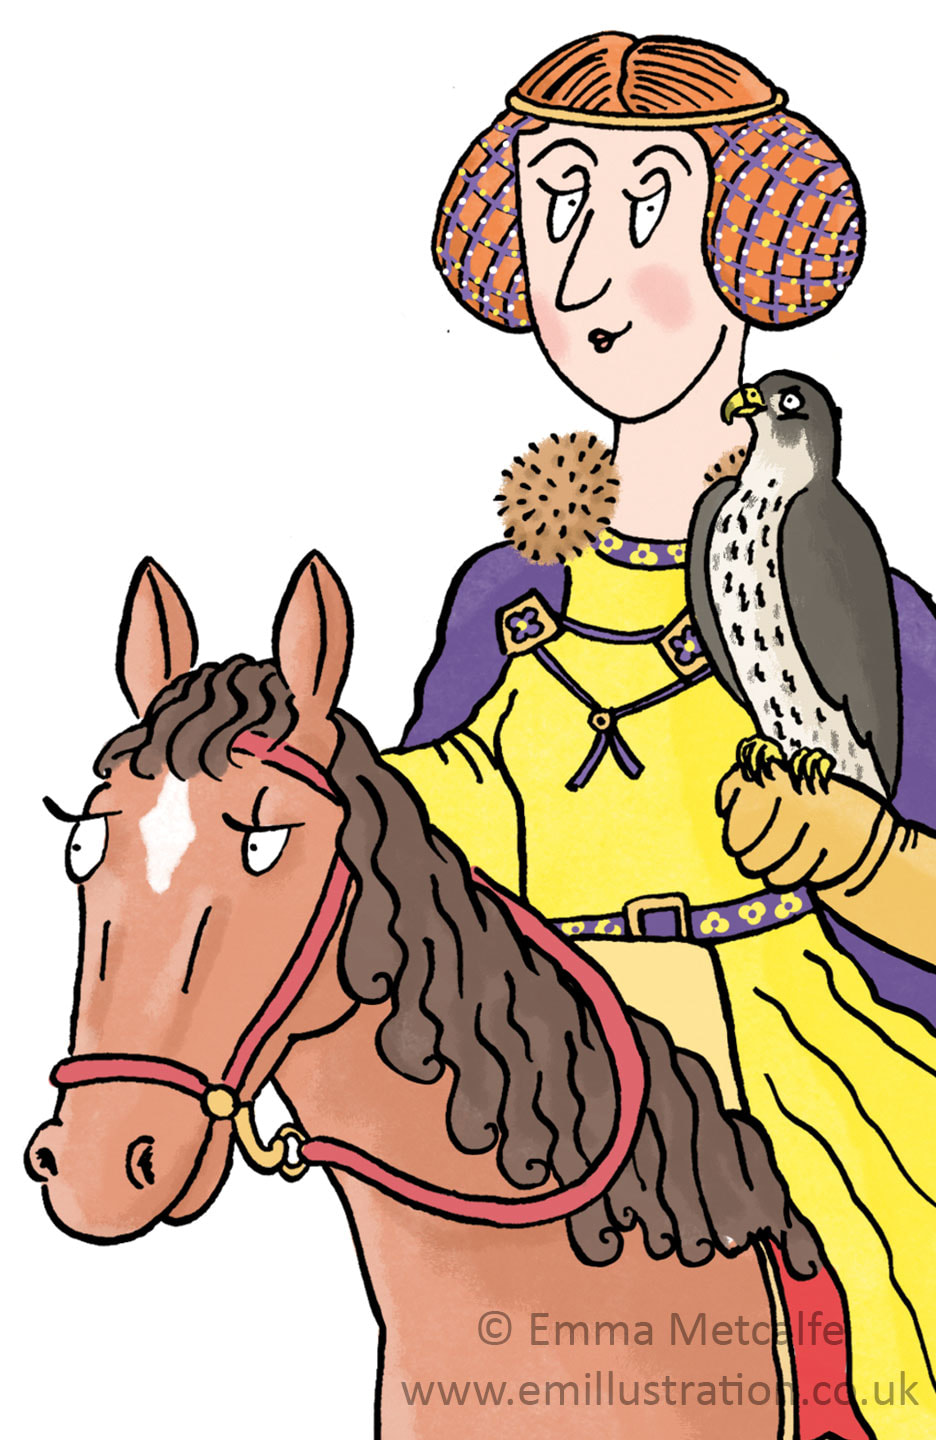 Wealthy medieval lady with crespinette hairstyle, historical cartoon illustration by Emma Metcalfe